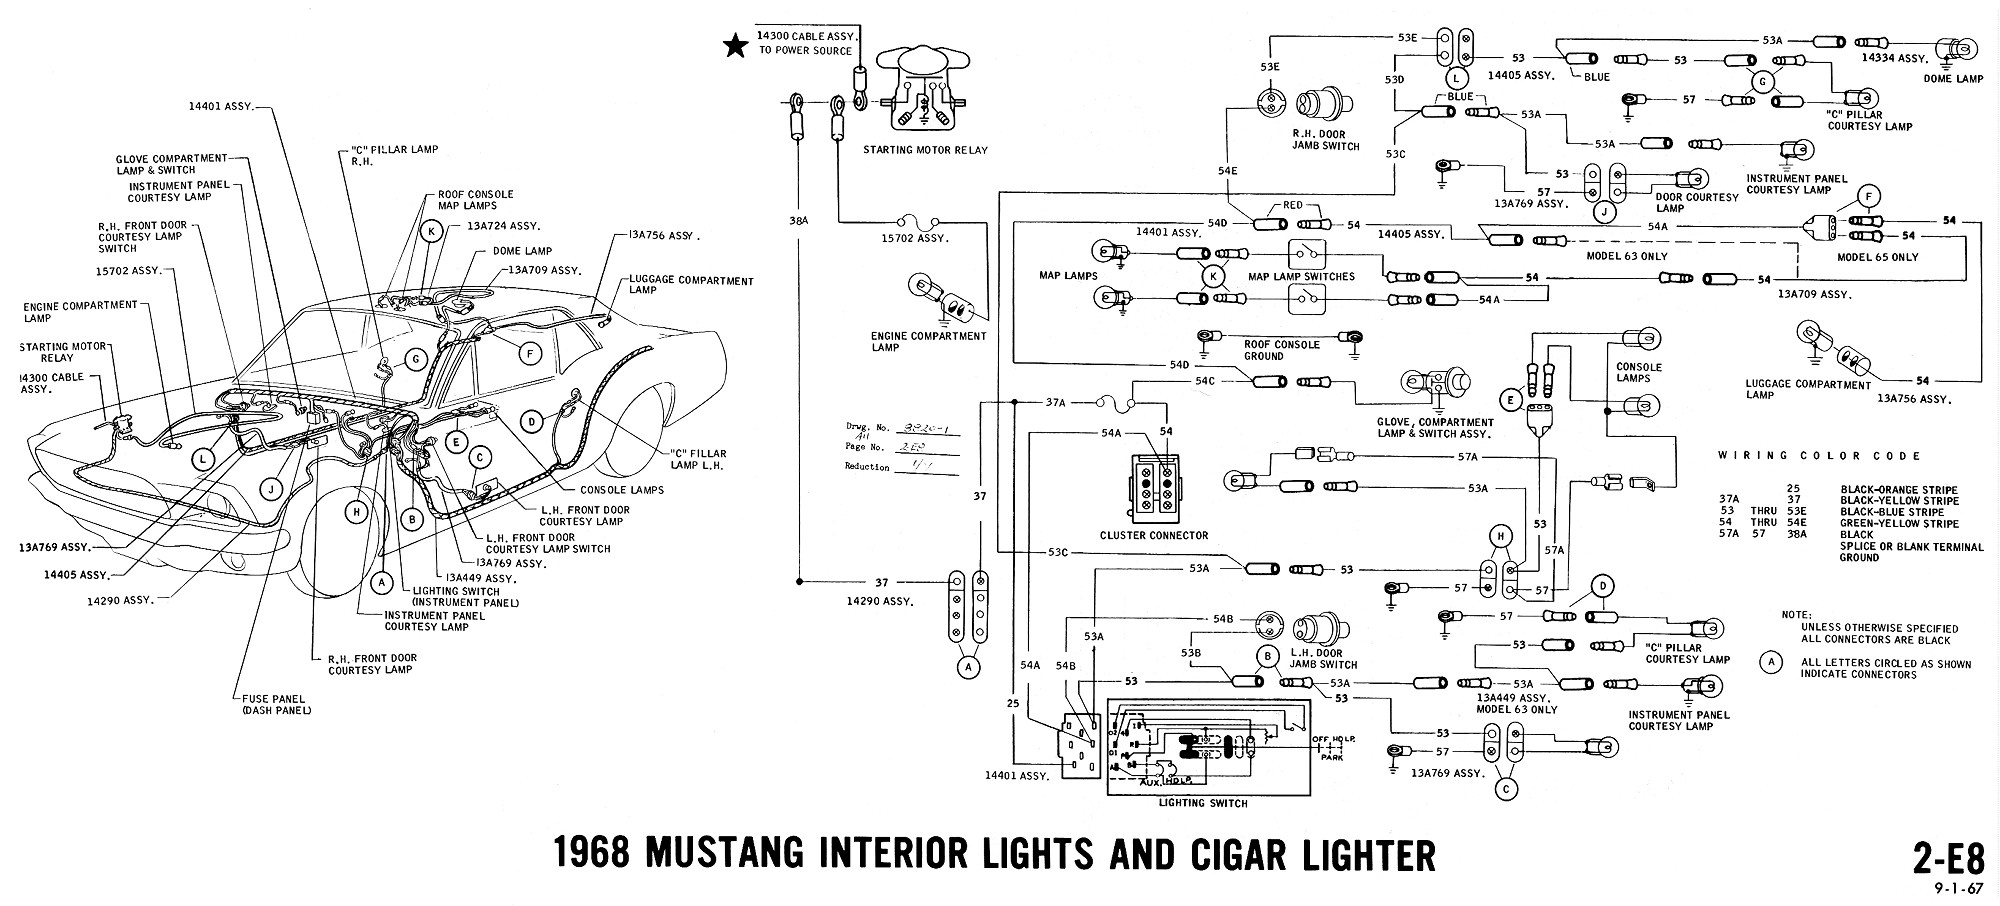 1968 Mustang Wiring Diagram Vacuum Schematics on ford vacuum system diagram